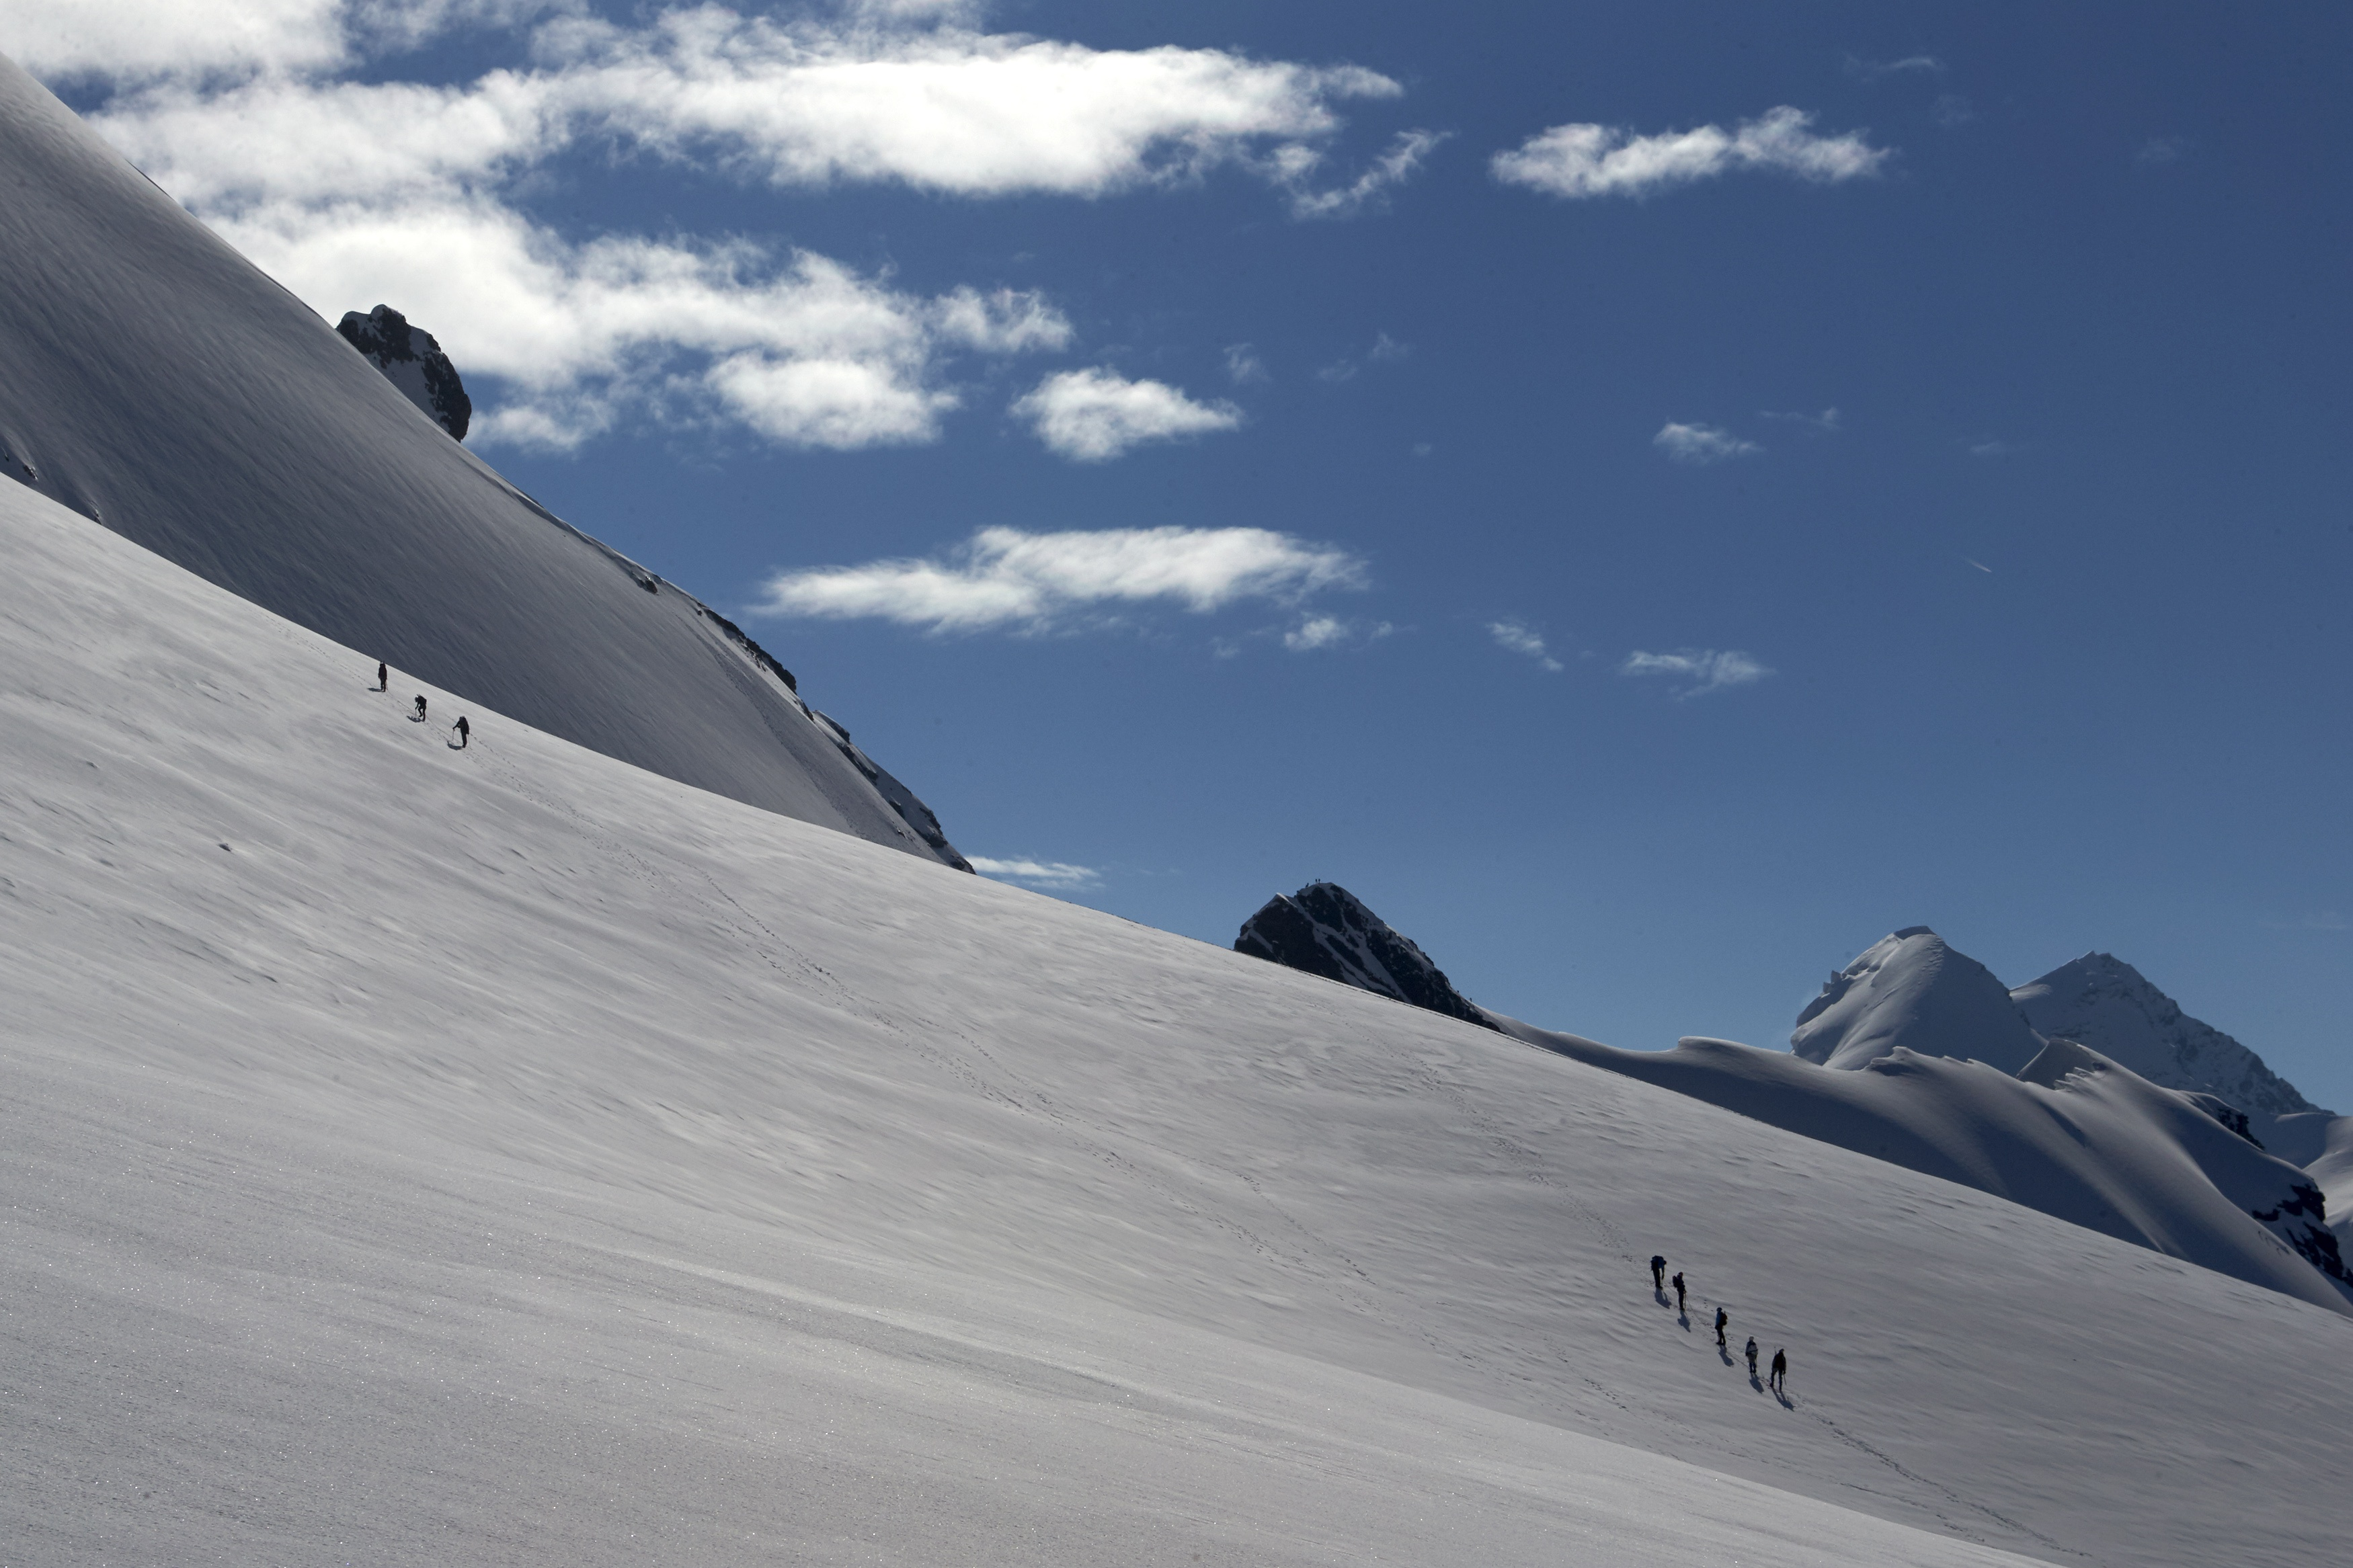 Mountain climbers tied together make their way up a steep, snowy peak with a blue sky in the background.